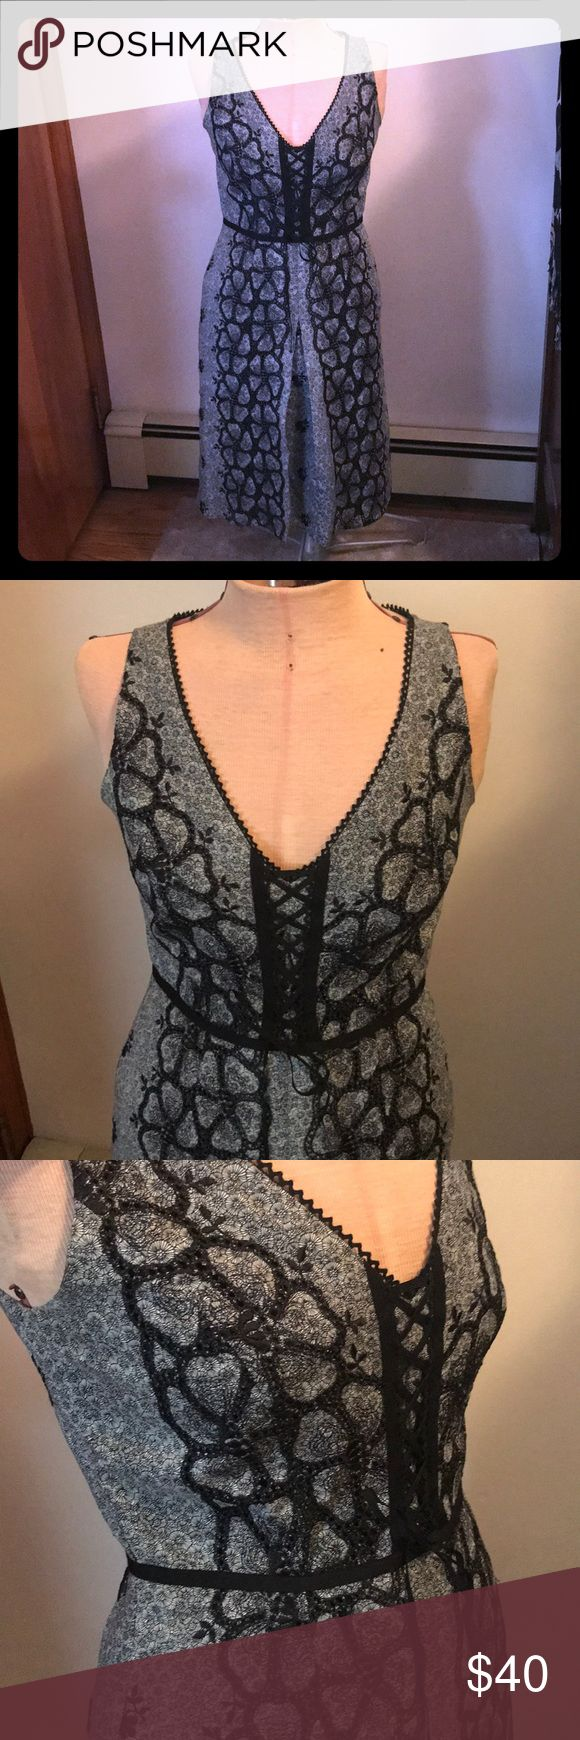 Beth Bowles anthropology Dress size 6! Preowned & preloved  Excellent condition beth bowley anthropology Dresses